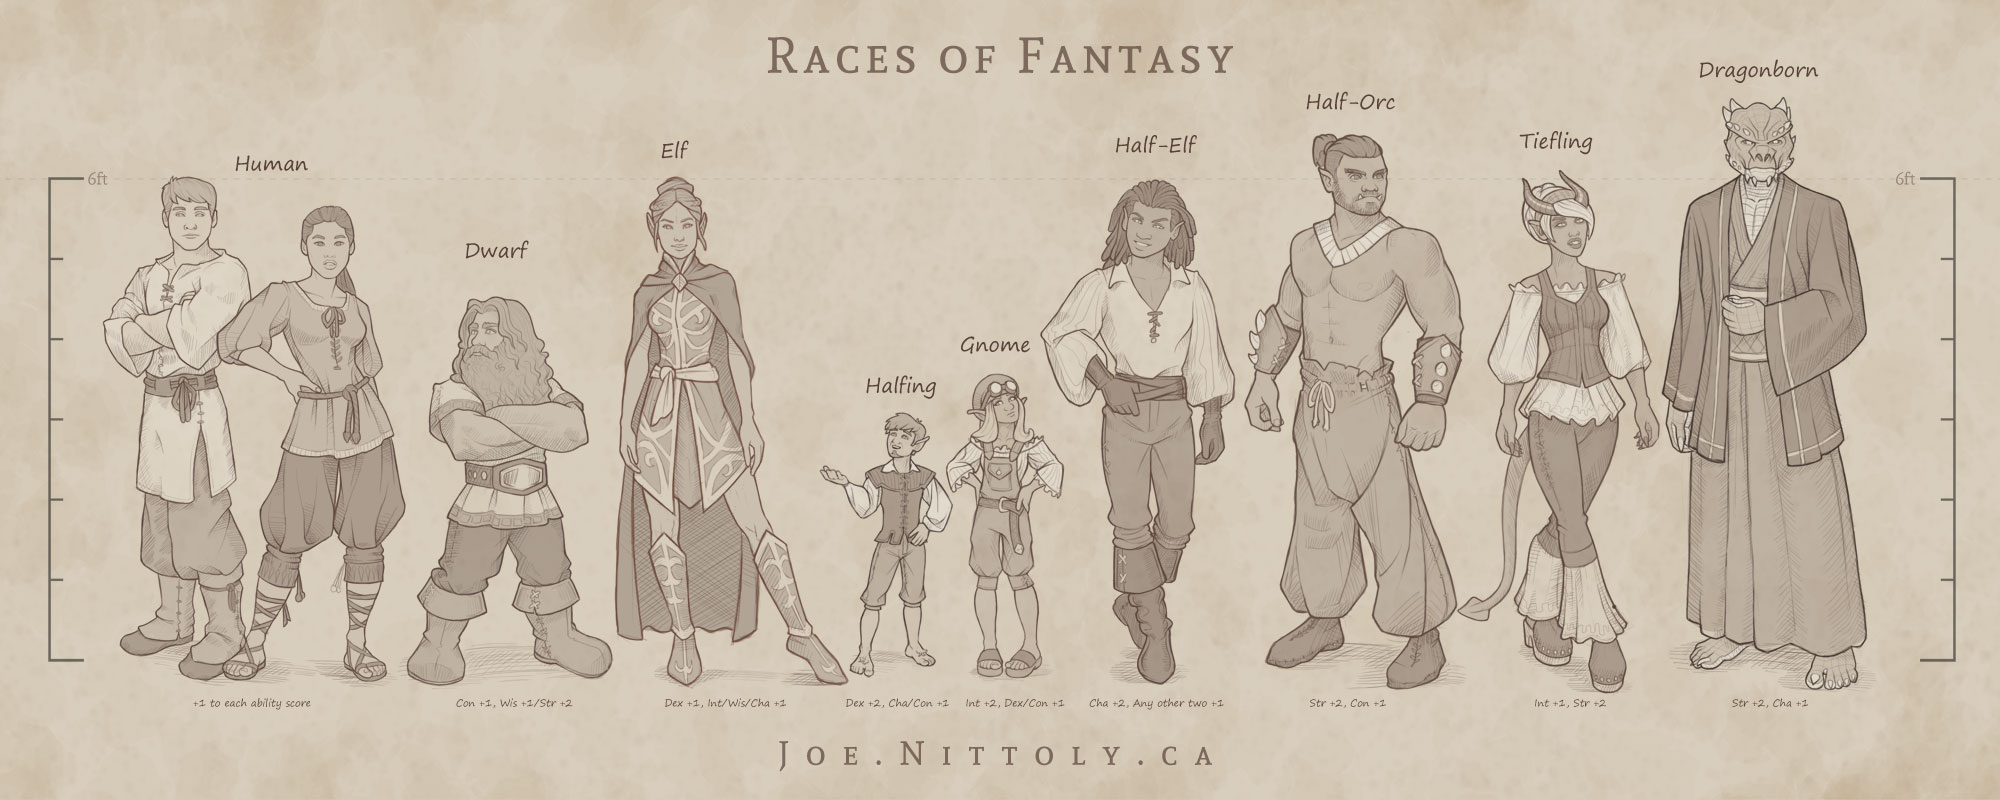 'Fantasy Races Chart' by Joe Nittoly